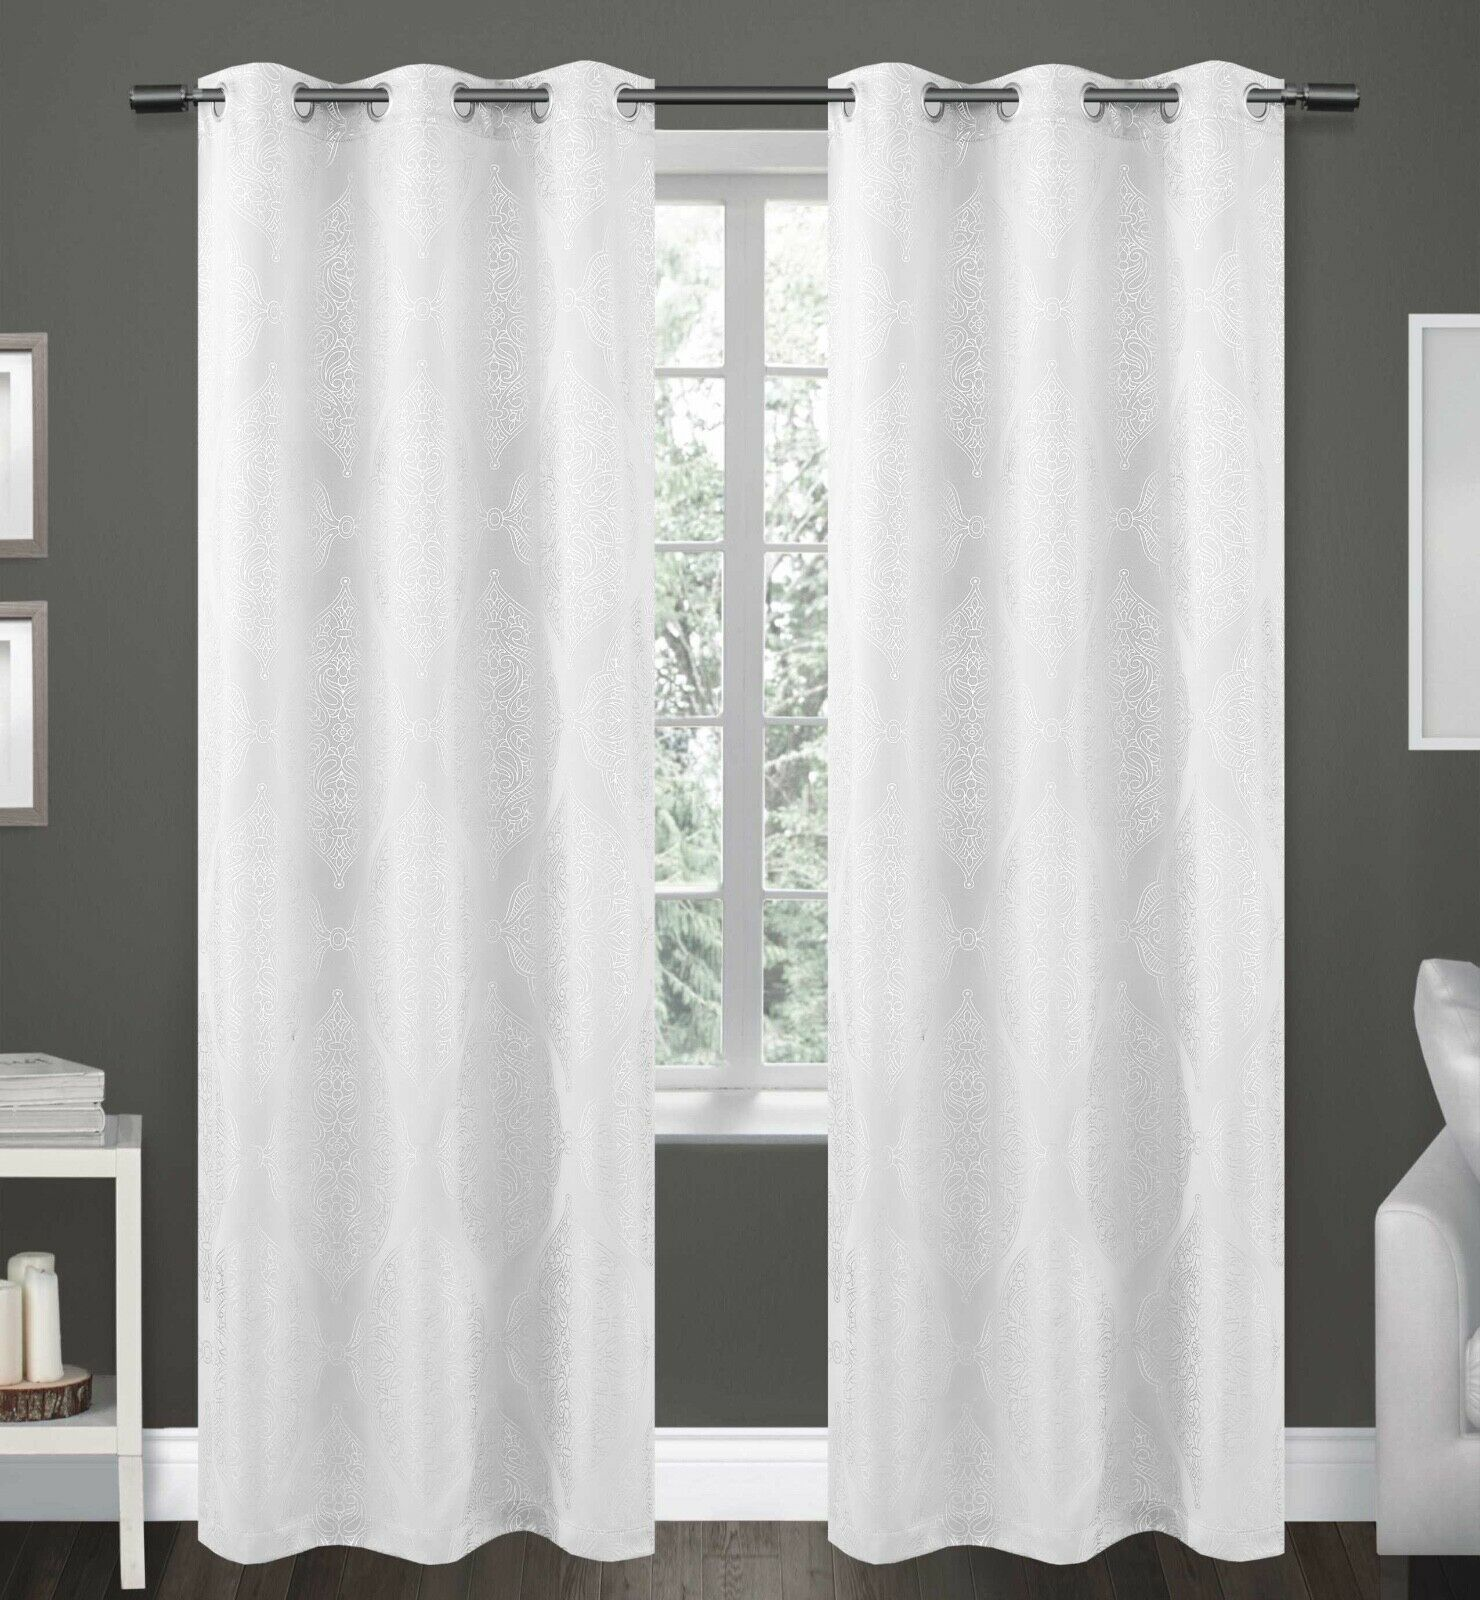 "Haley 84"" Long Faux Silk Window Curtain Grommets Panels Set of 2 - White"